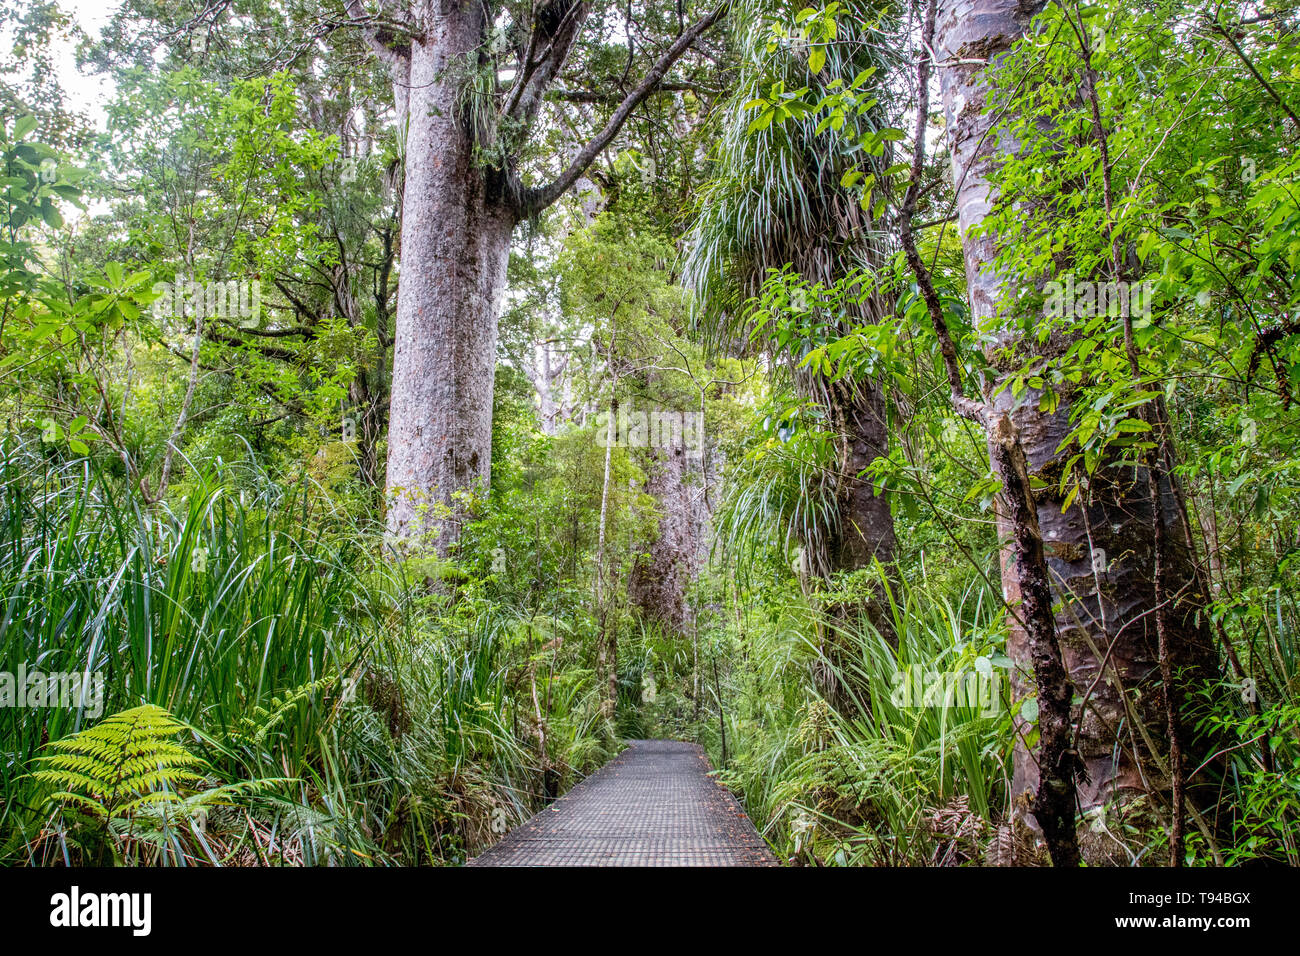 Kauri Tree Forest in New Zealand - Stock Image